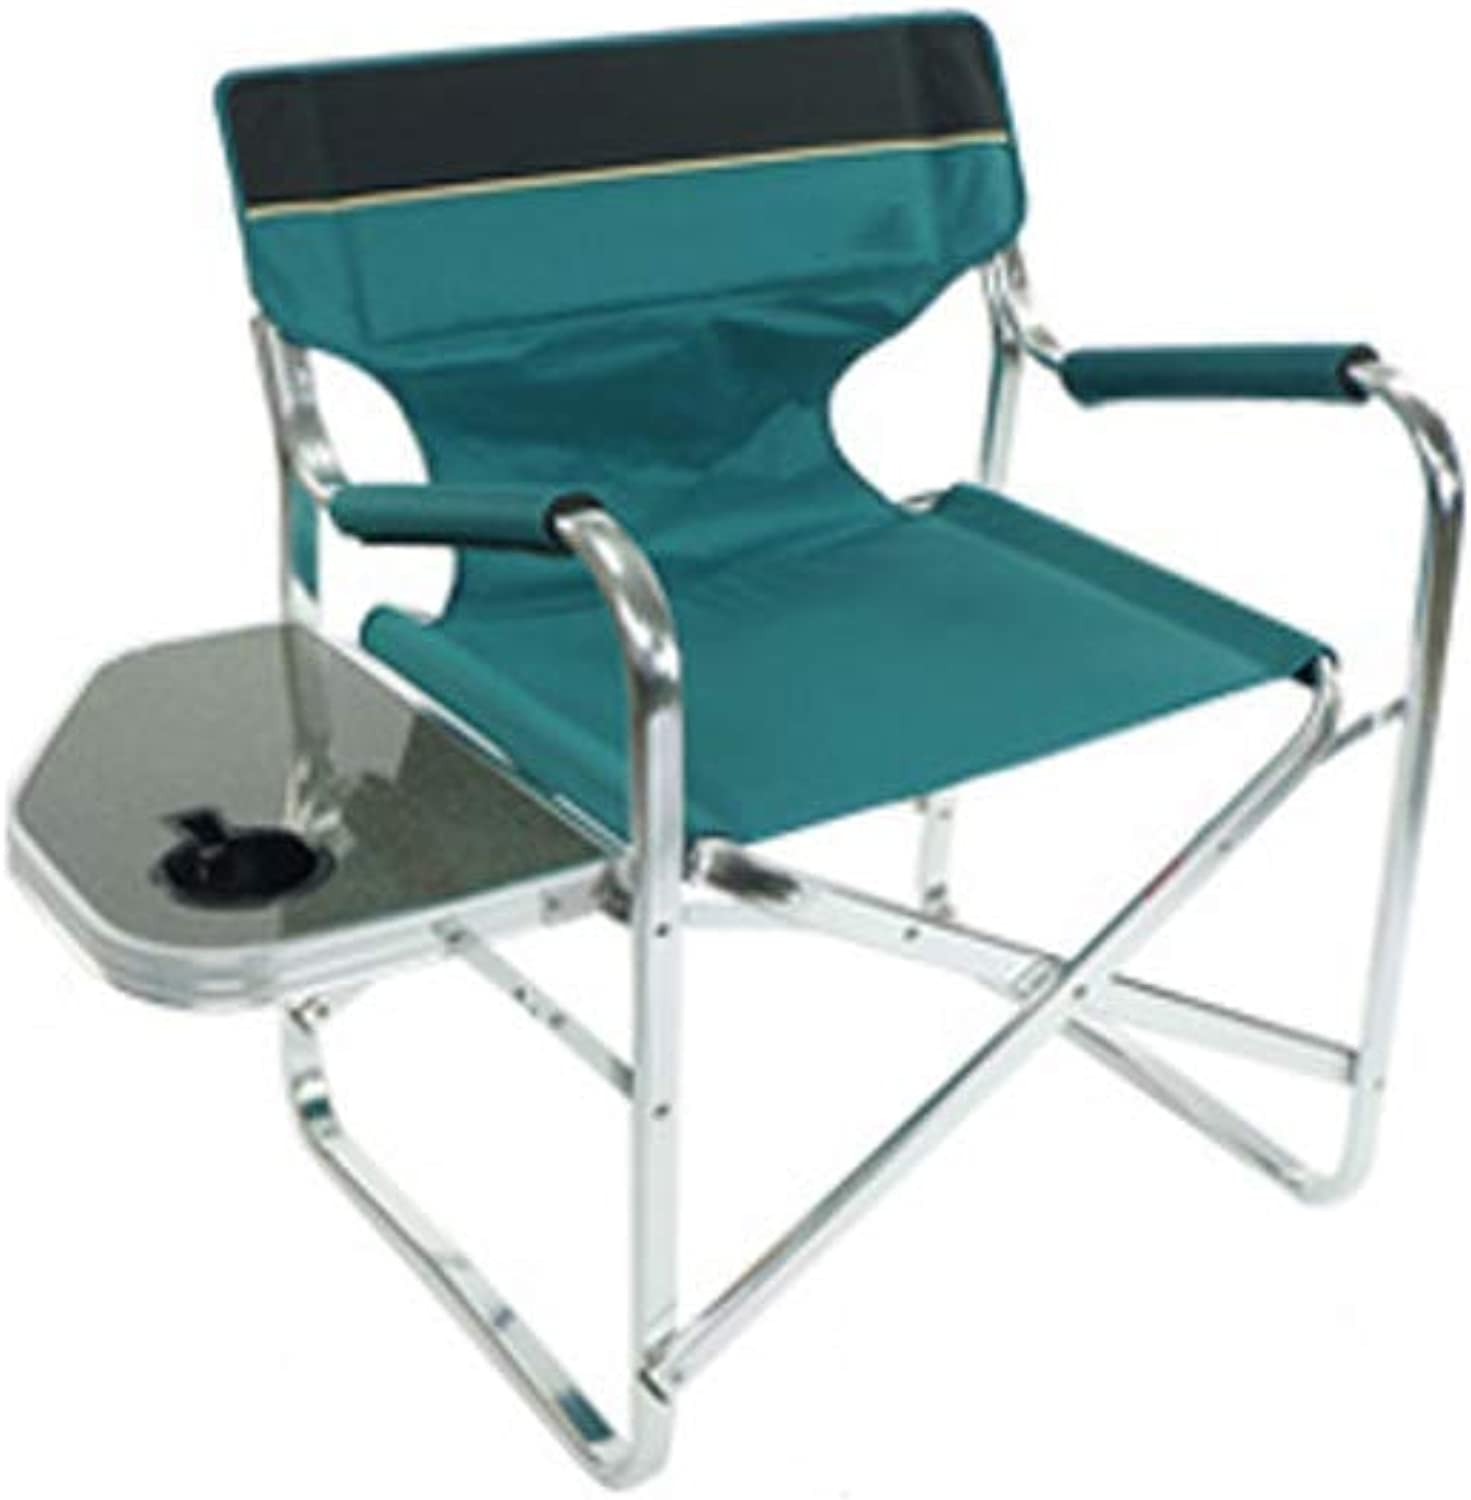 Outdoor Products Portable Folding Chairs Folding Stool Outdoor Family Indoor Public Garden Meeting Room Public Place Beach Chair